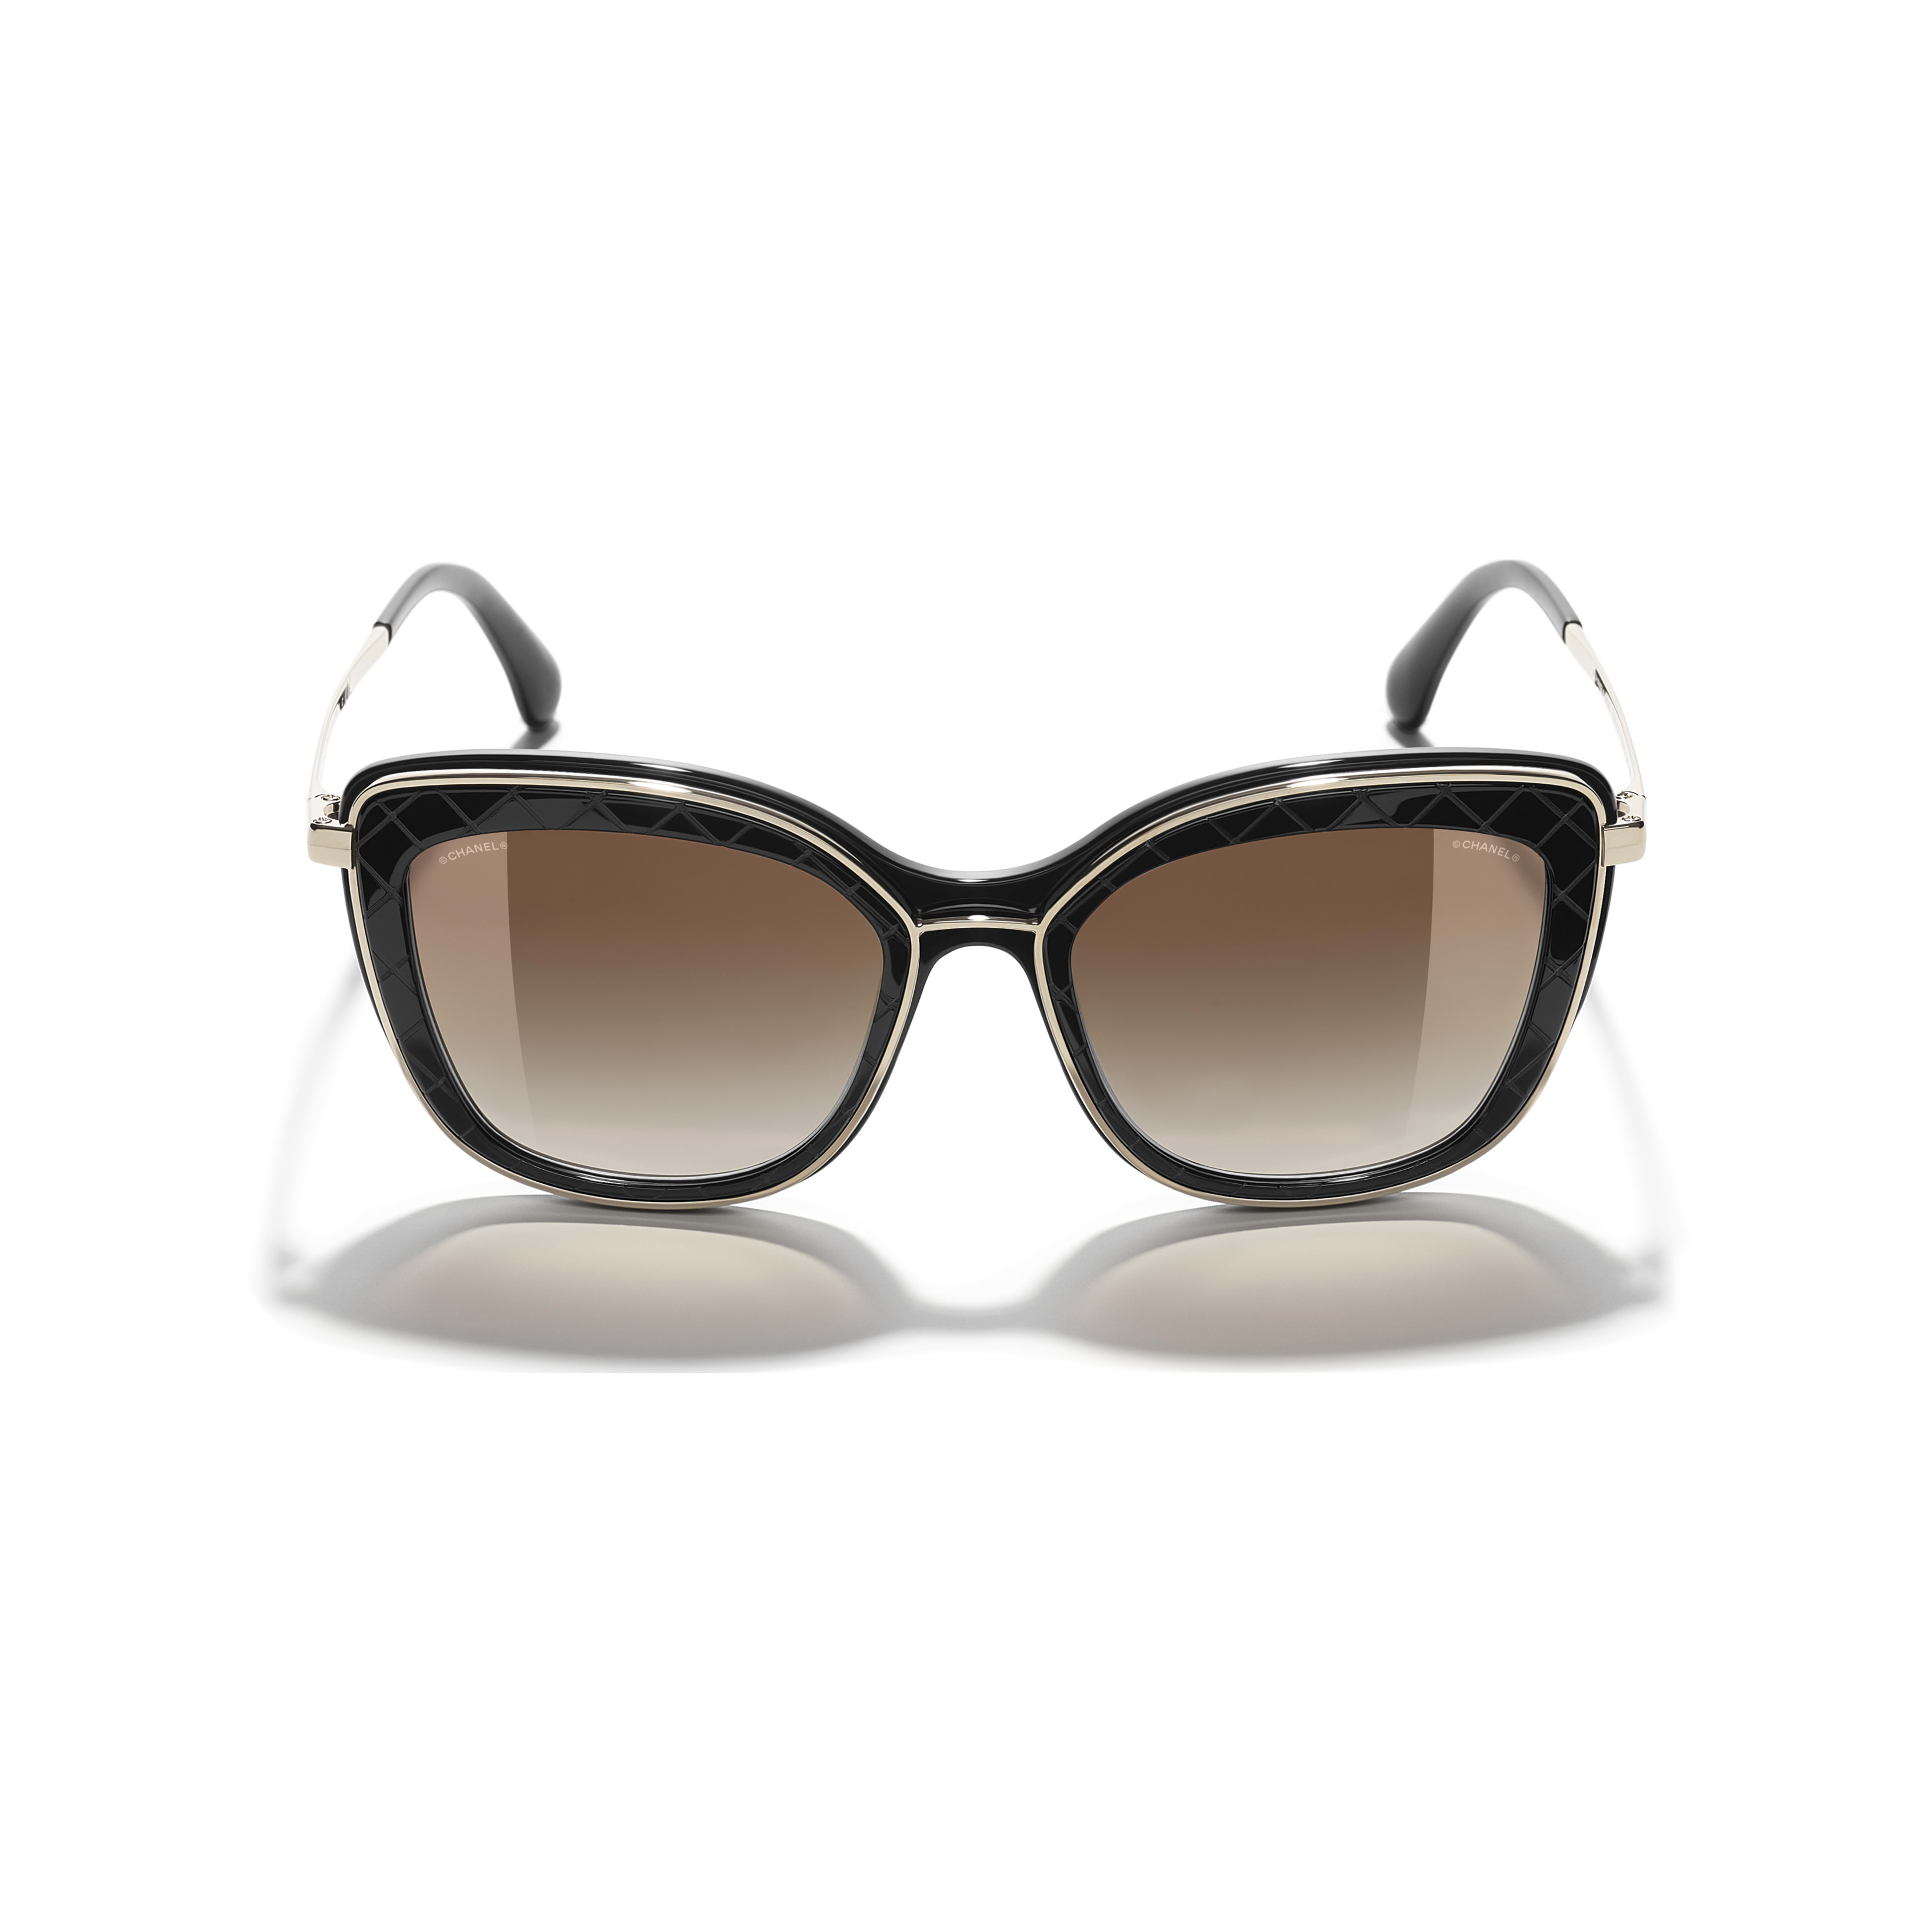 Butterfly Sunglasses - Black & Gold - Acetate & Metal - Extra view - see full sized version